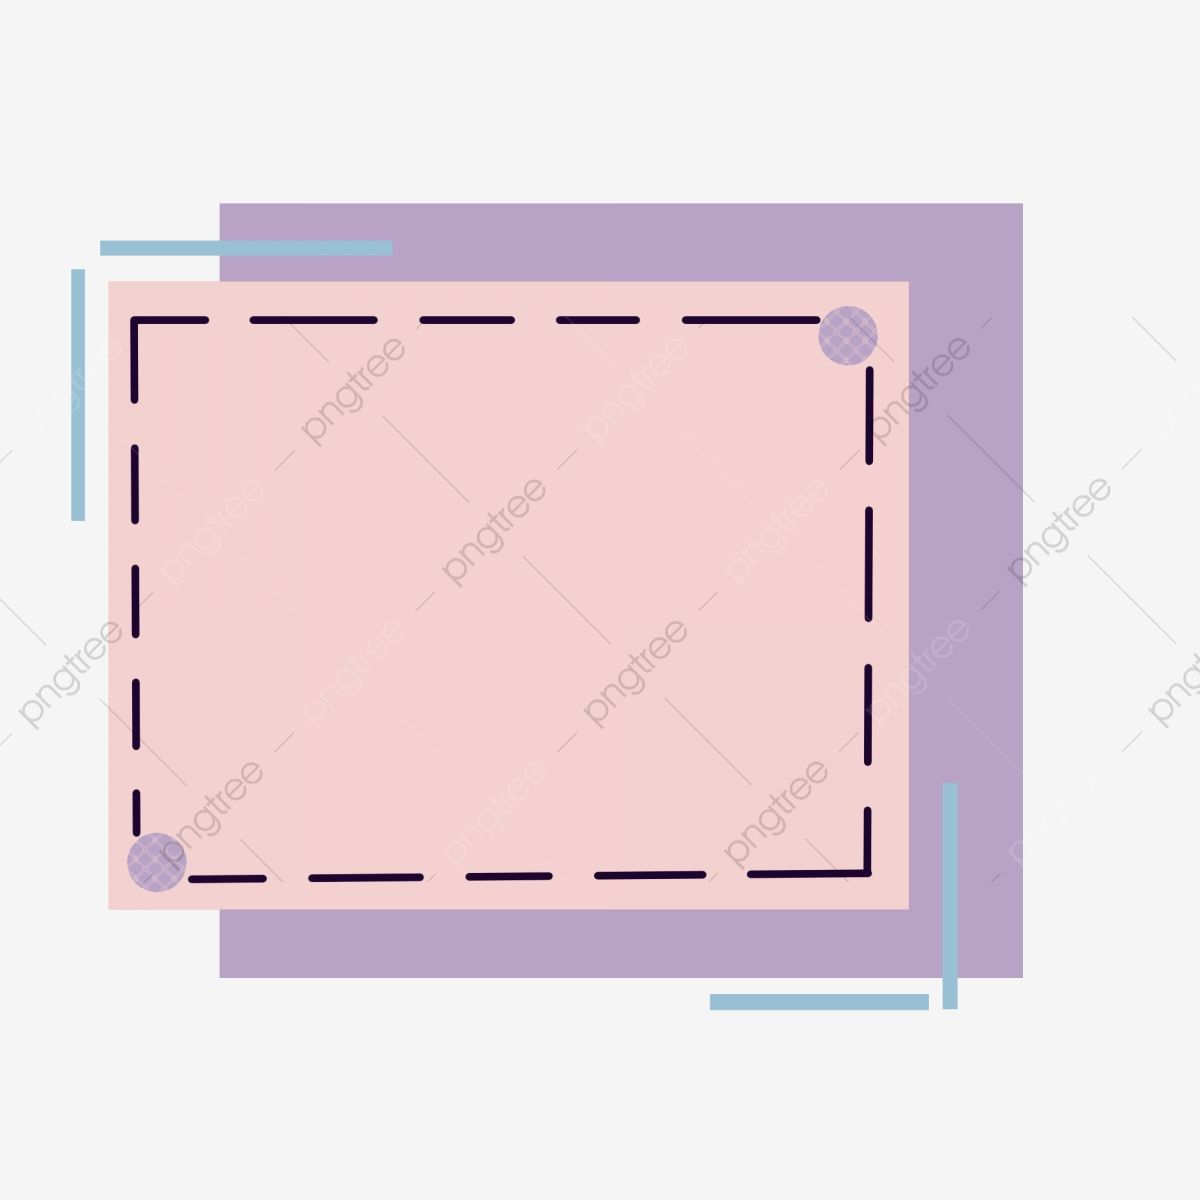 Simple Border Color Candy Frame Line Cute Rectangle Clipart Simple Border Hand Painted Border Png Transparent Clipart Image And Psd File For Free Download Simple Borders Powerpoint Background Design Colorful Candy